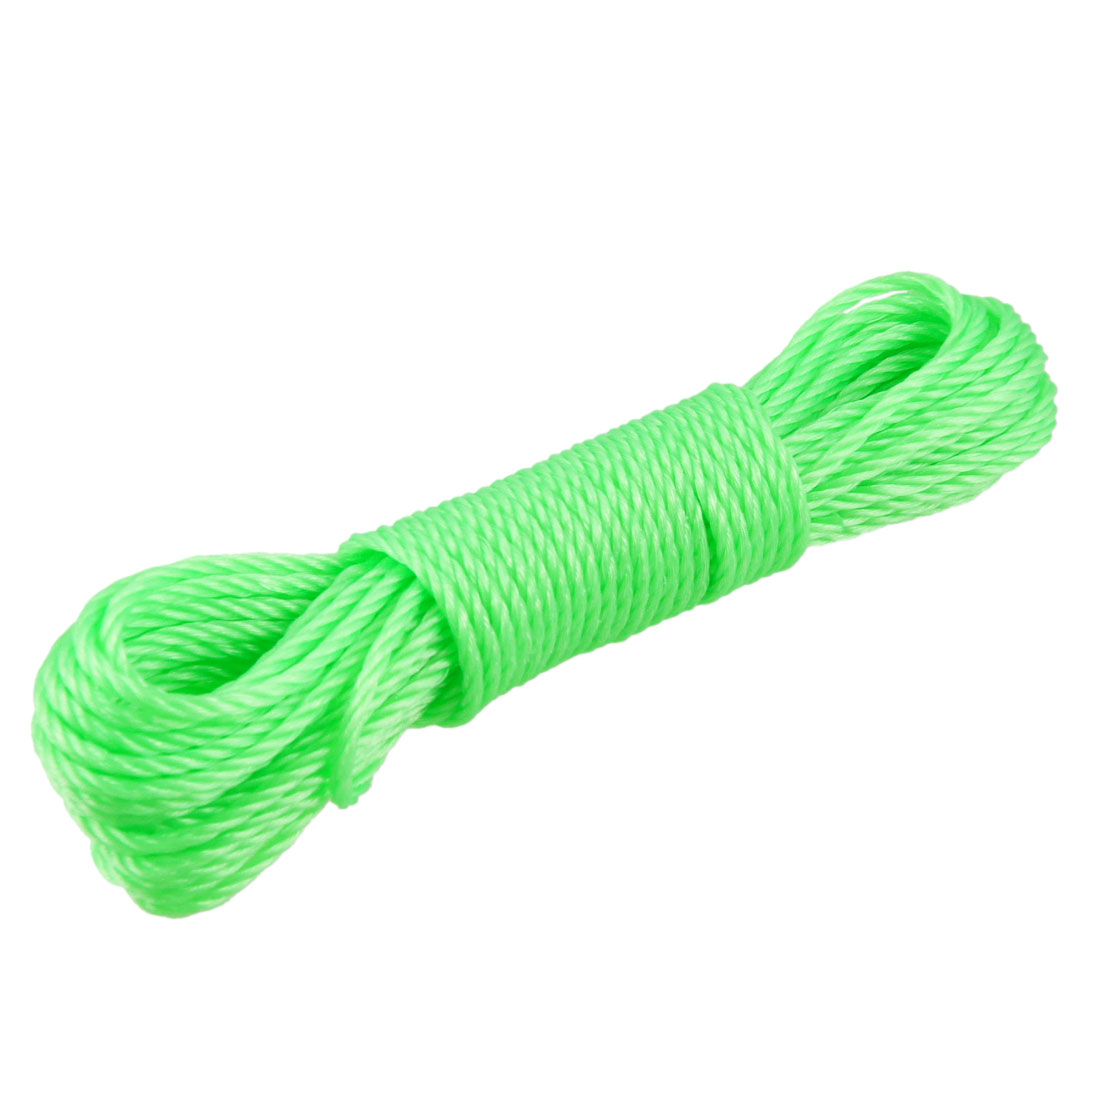 32Ft Length Clothes Hang Rope Nylon String Clothesline Lime Green